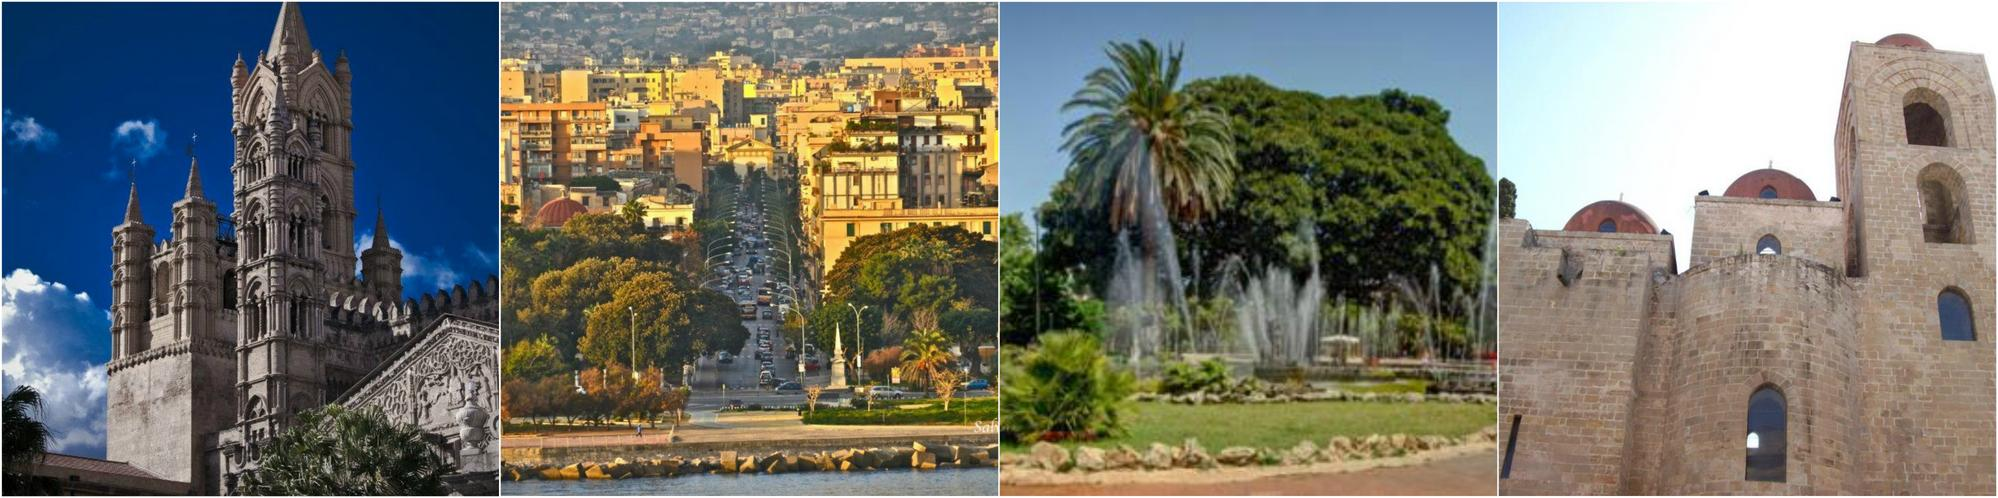 Sicily DMC Incentives, Palermo and Monreale